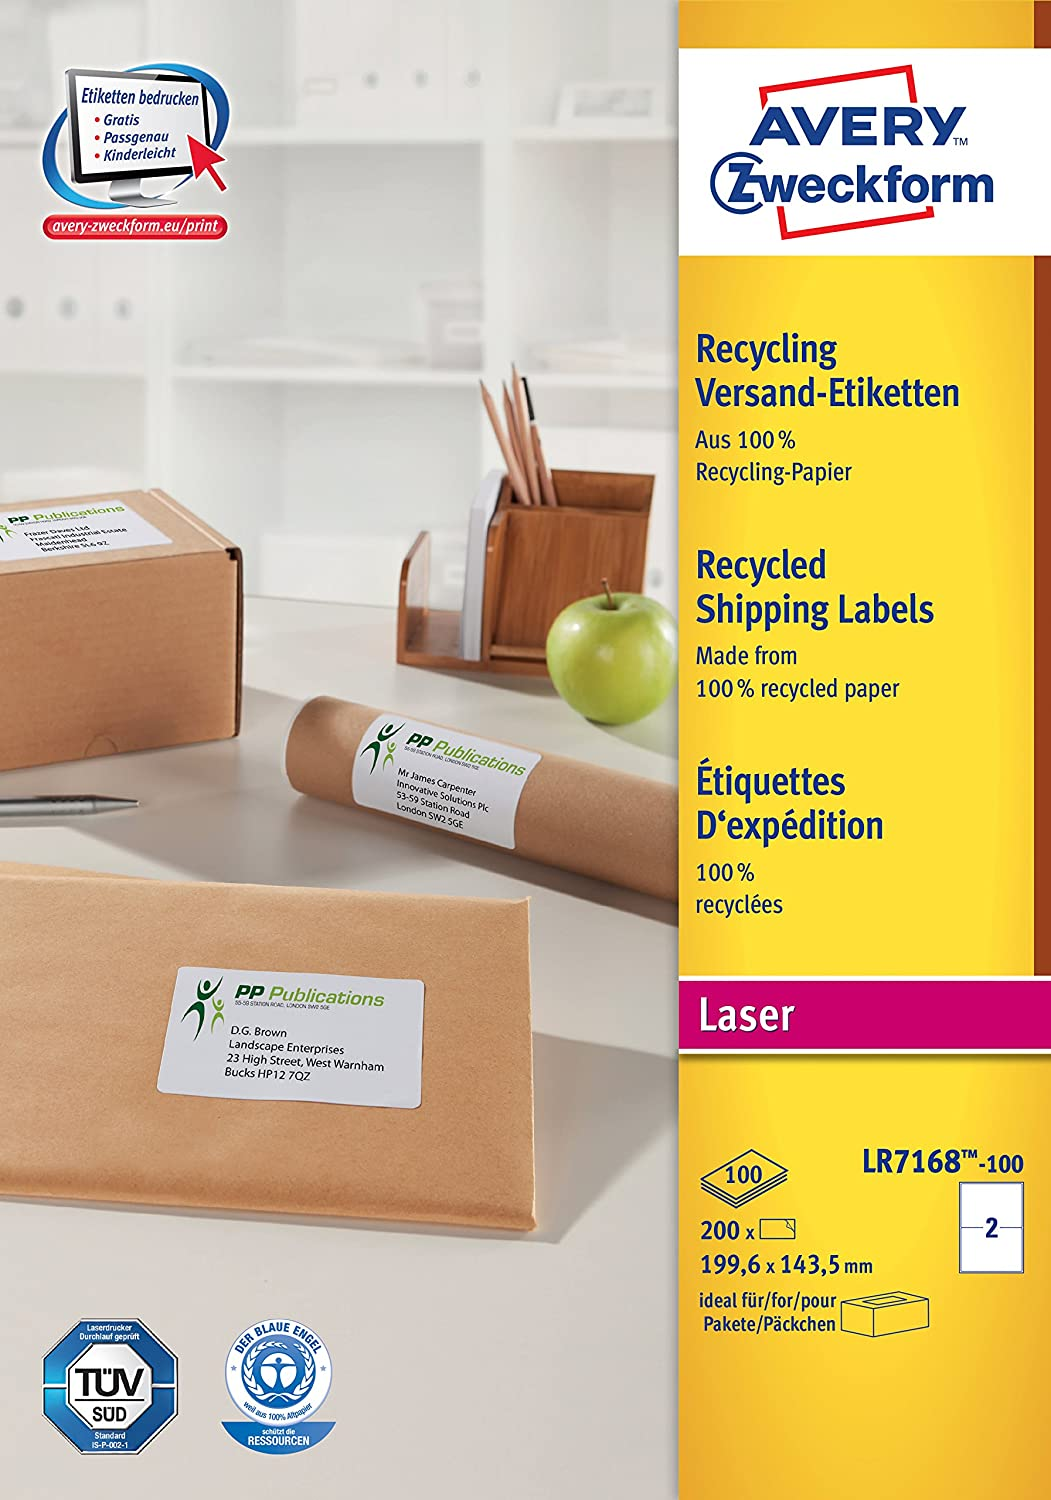 2 Labels Per A4 Sheet Avery Self Adhesive Recycled Parcel Shipping Labels 200 labels QuickPEEL White Laser Printers